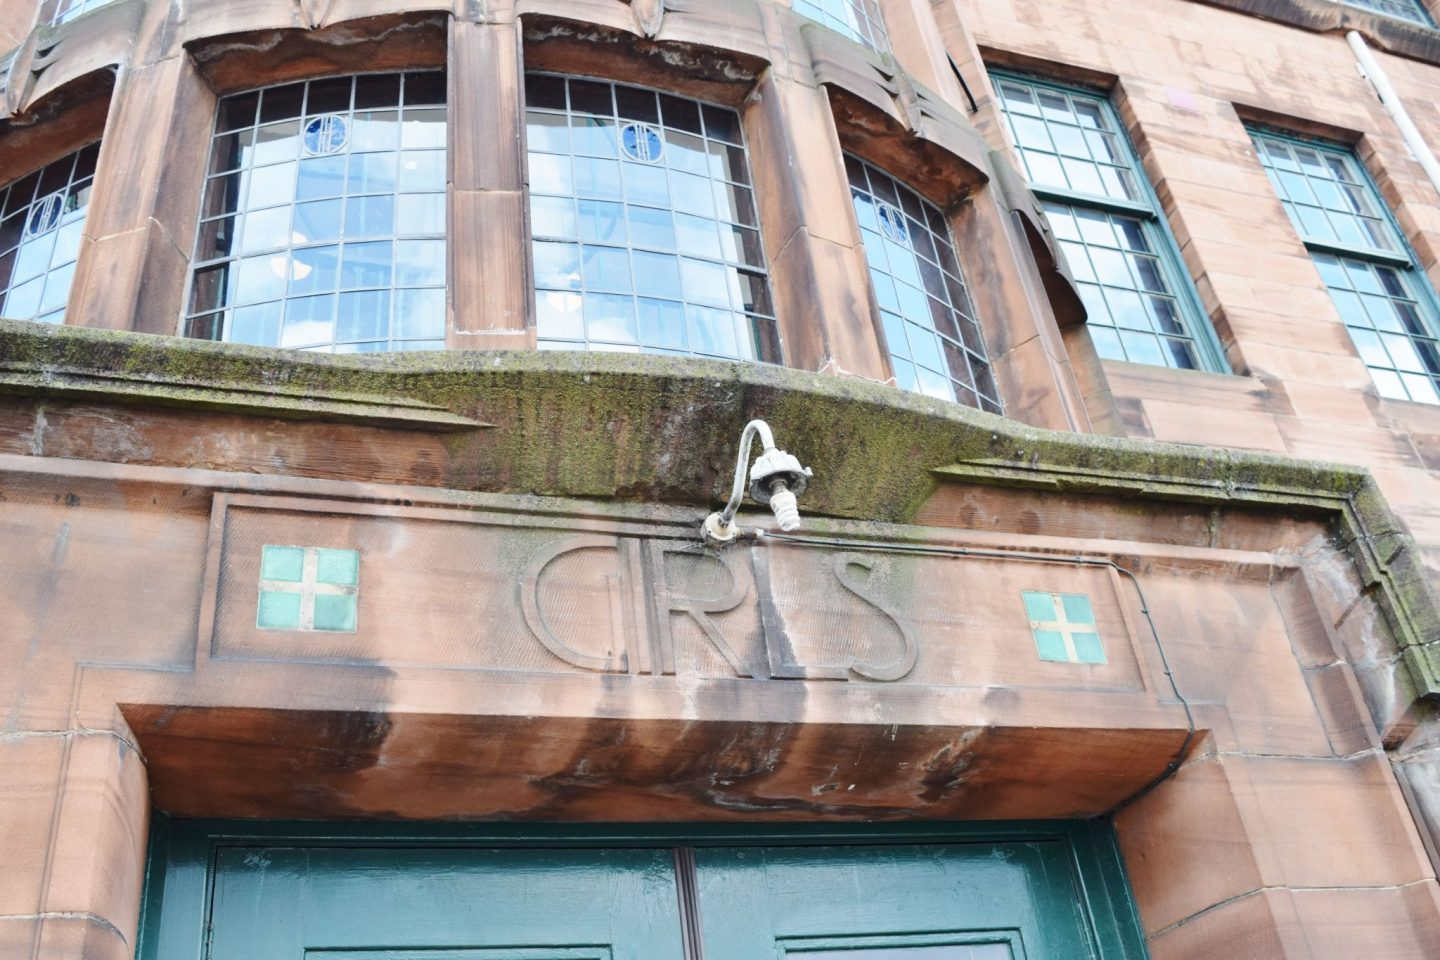 scotland street school museum girls entrance